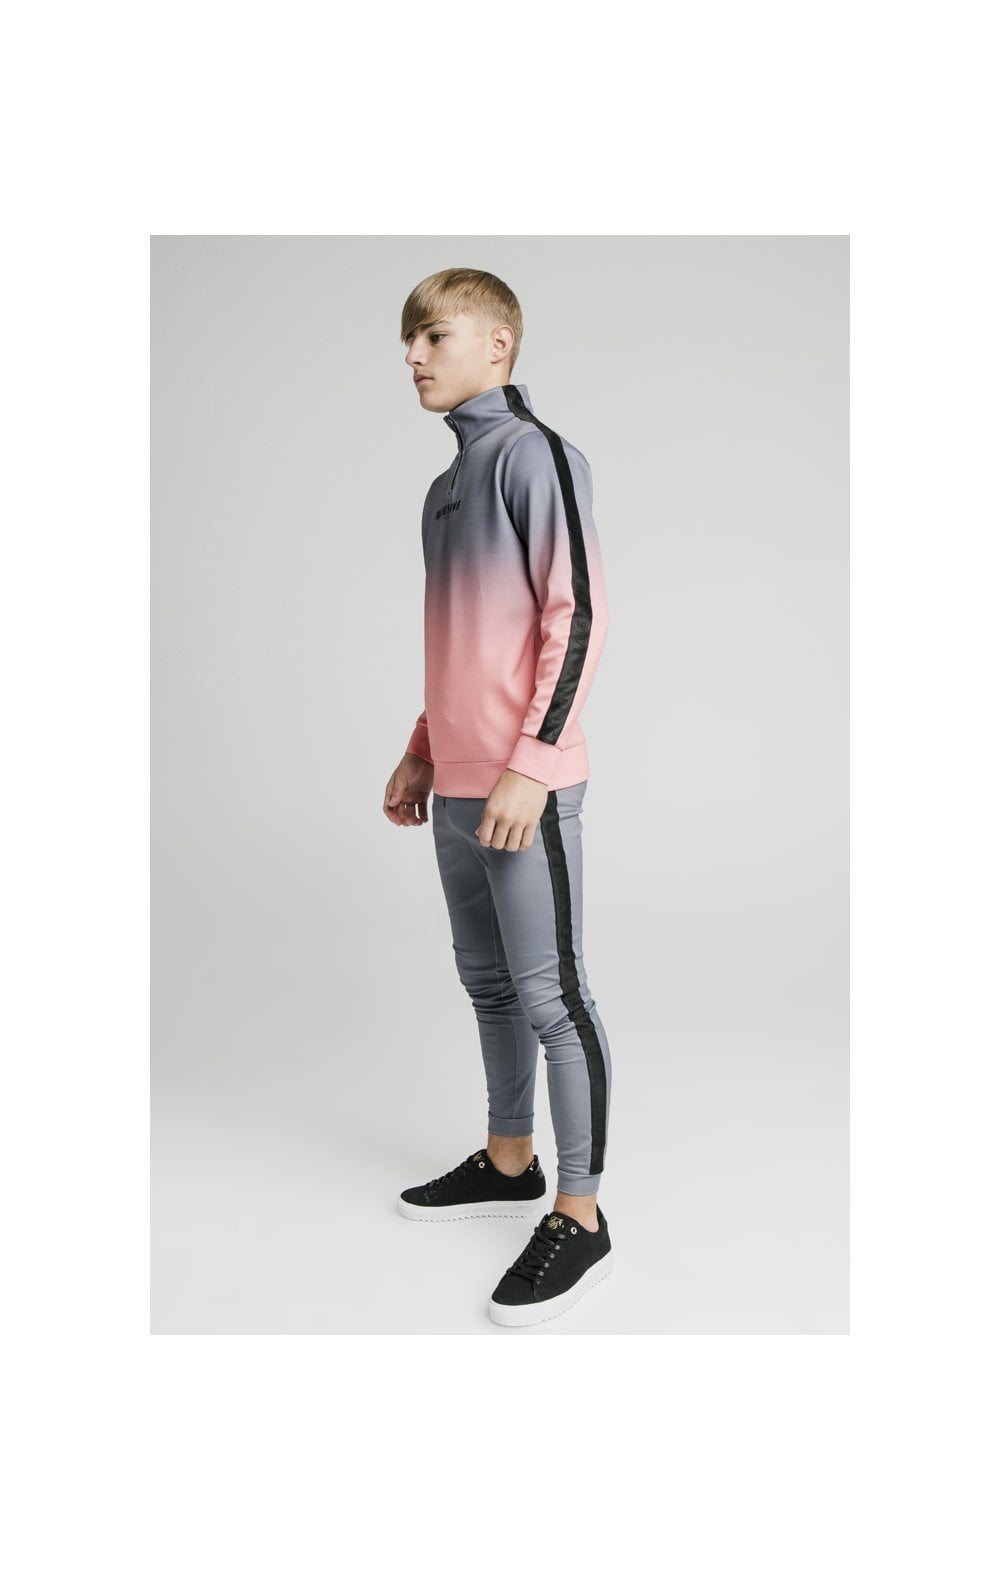 Load image into Gallery viewer, Illusive London Athlete Pants - Grey (5)